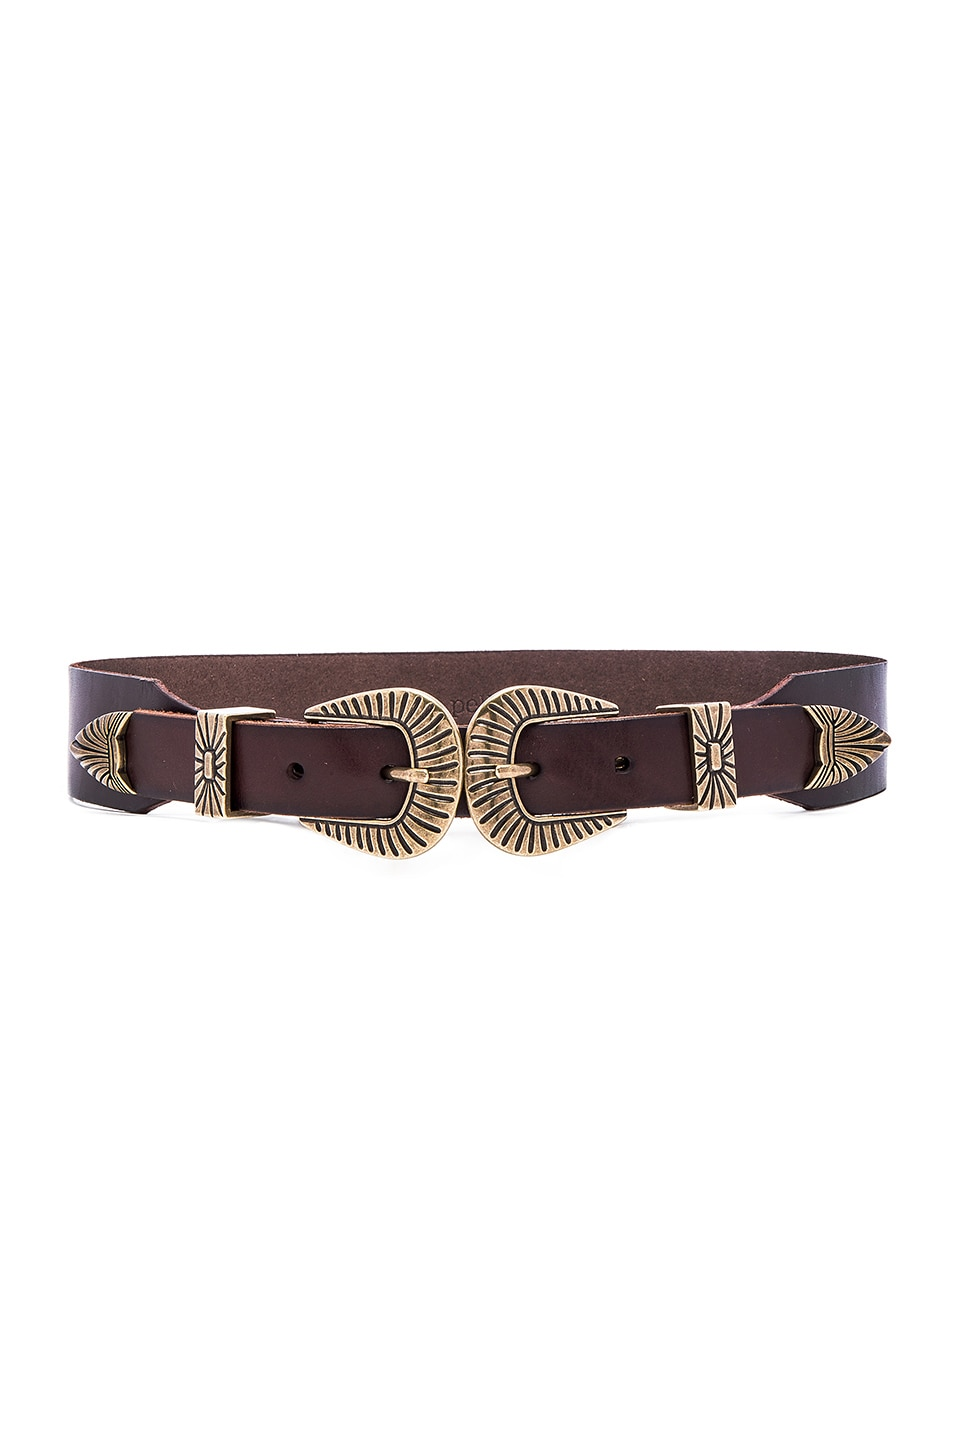 Double Buckle Hip Belt by Linea Pelle